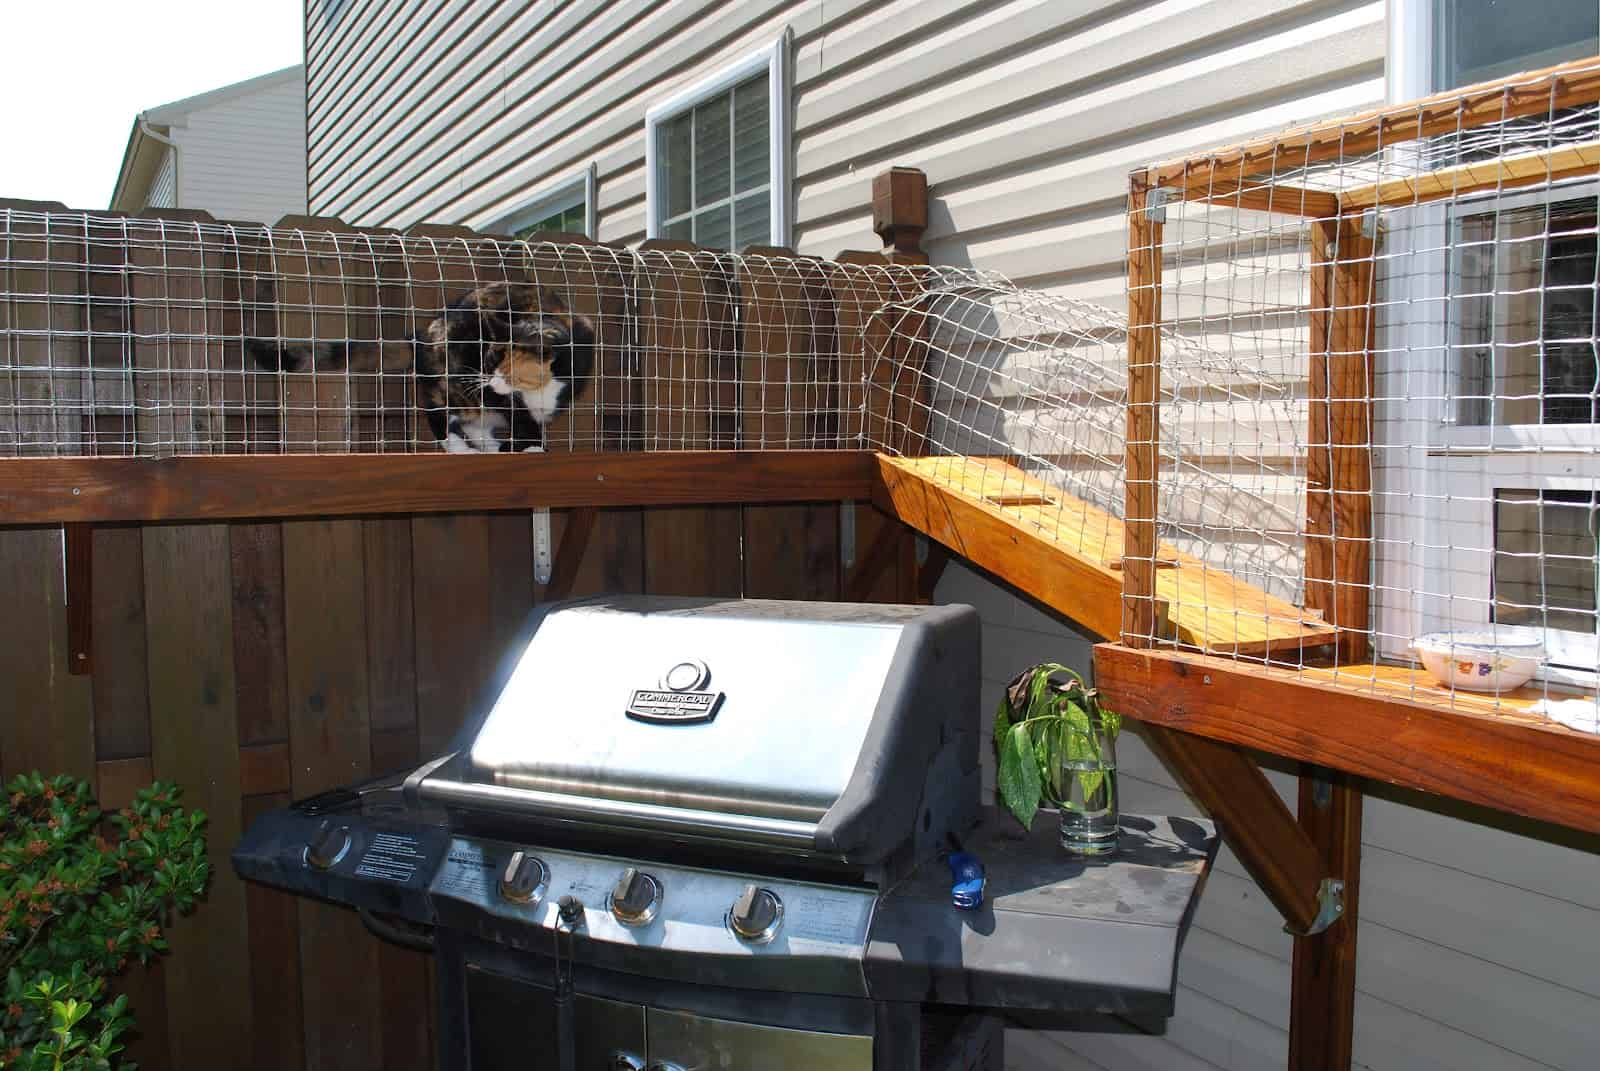 Fence mounted cat run around the yard